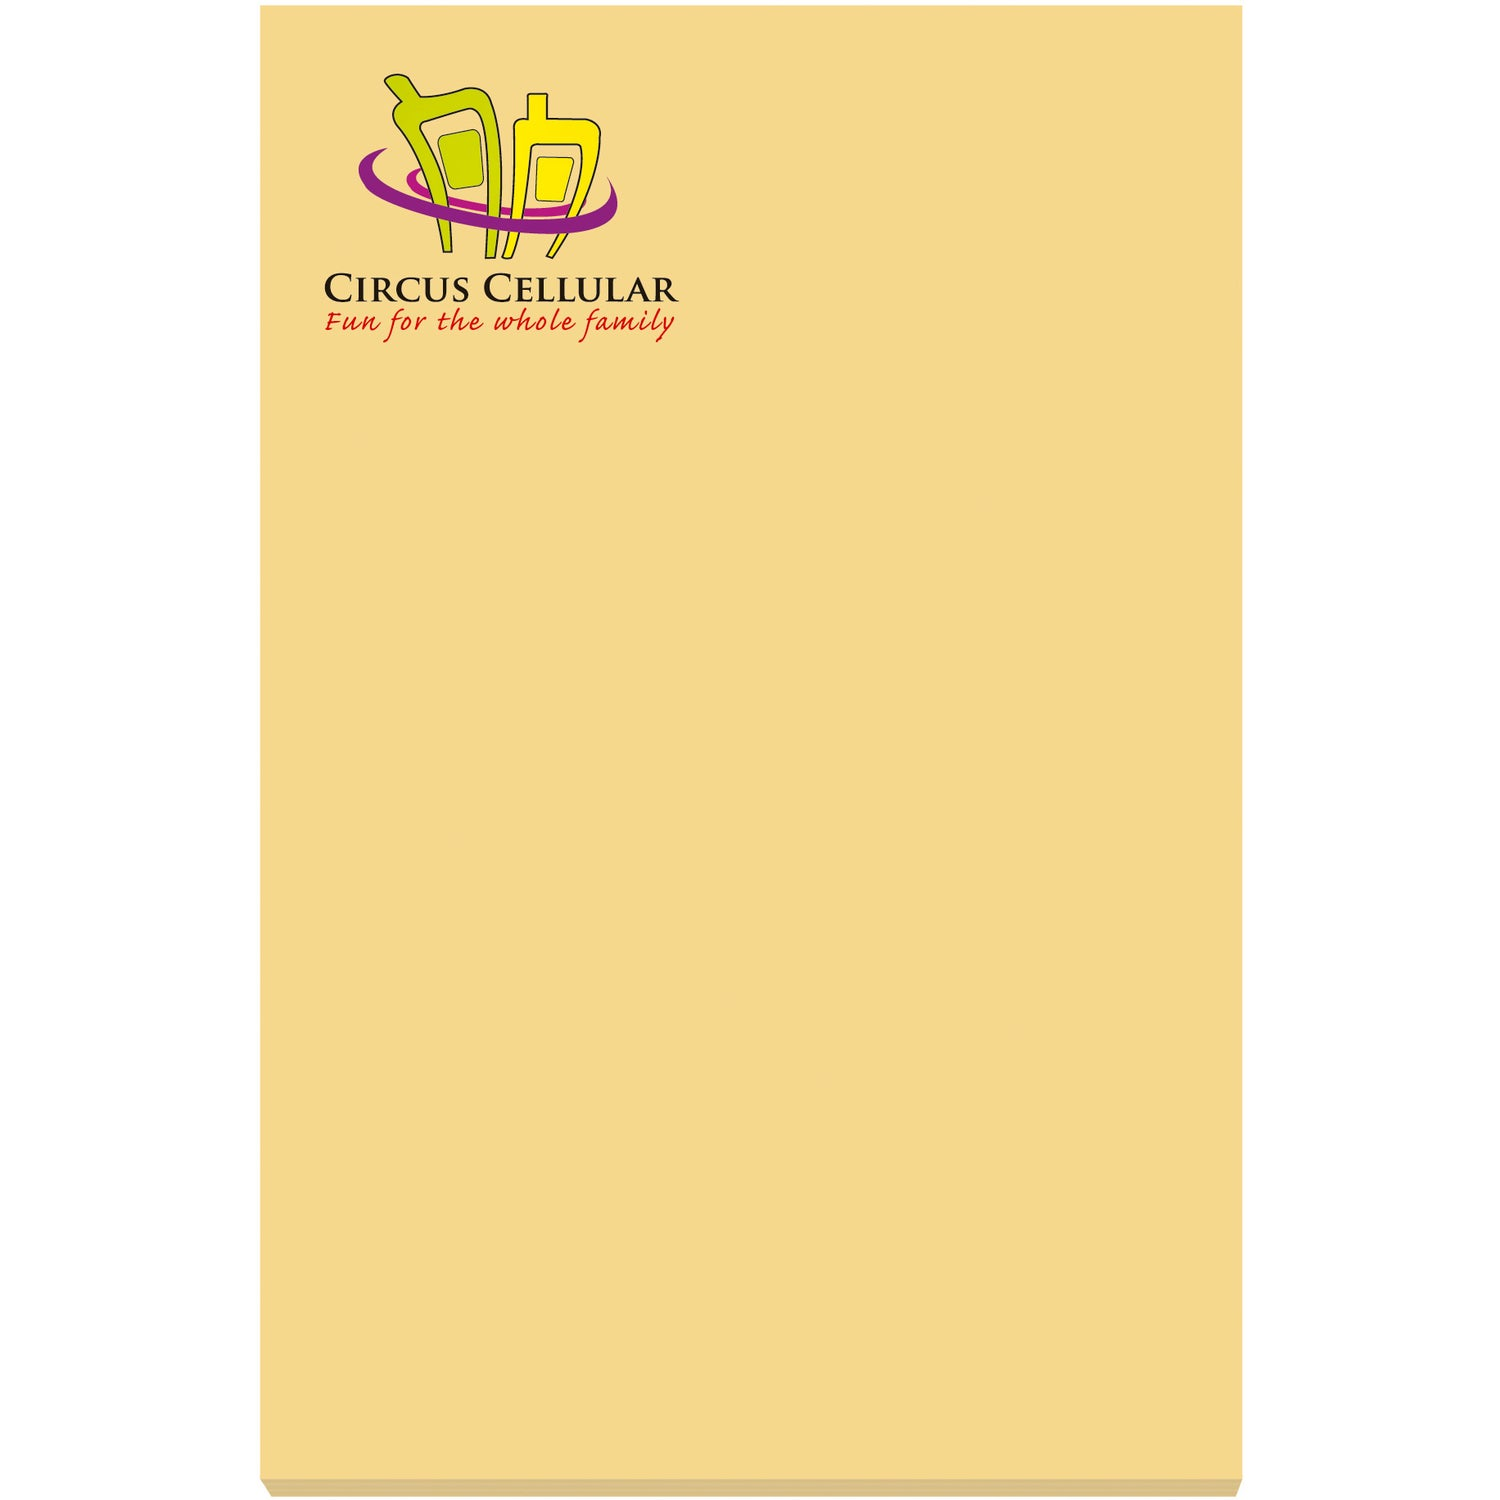 Custom Notepads, Note Pads, Scratch Pads, Memo Pads and Refills